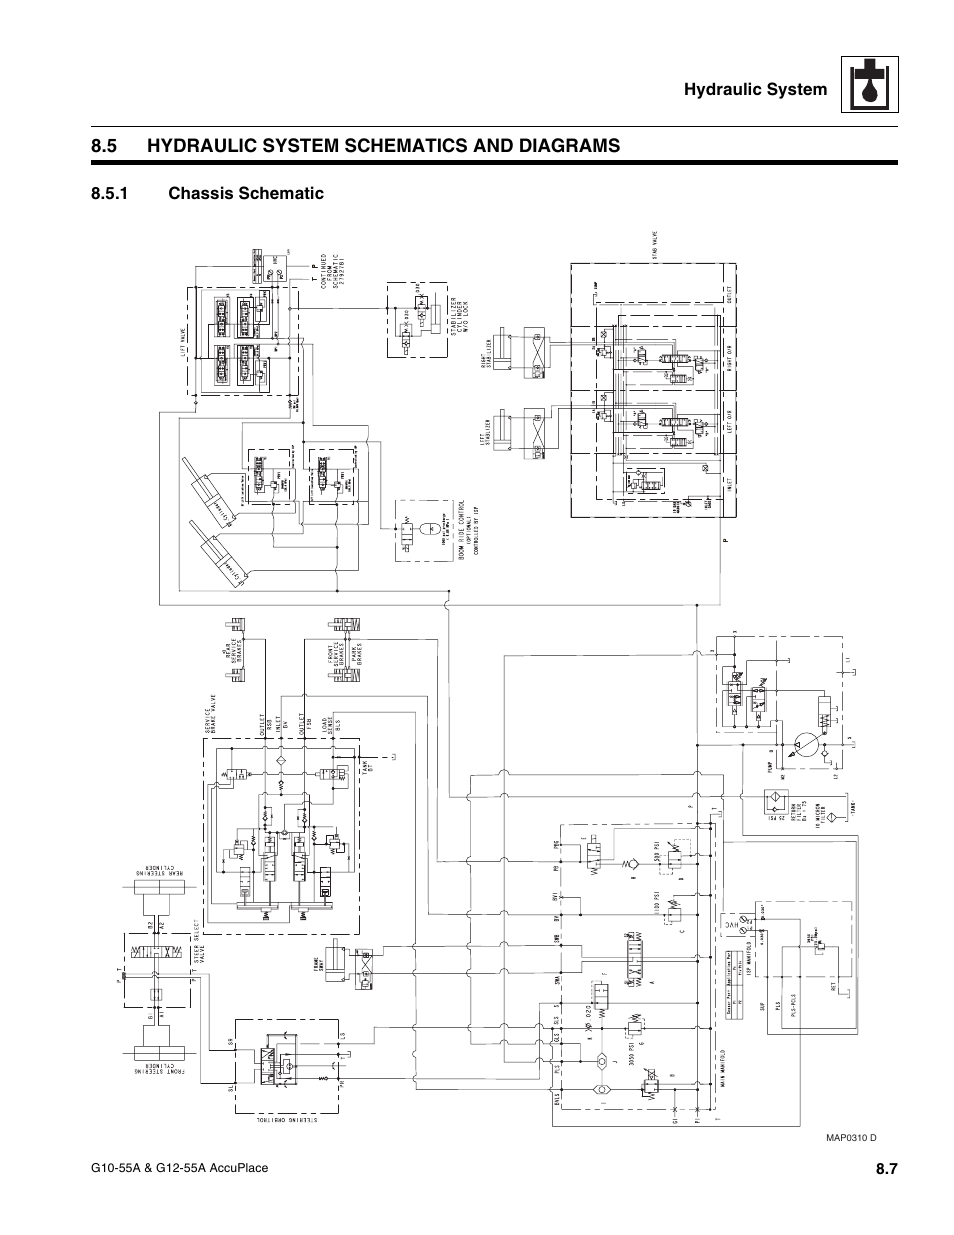 Allis Chalmers 175 Wiring Diagram together with D Ball Wiring Diagram 2014 Tundra likewise Bmw E36 Parts Diagrams as well Ck500 Kymco Scooters Wiring Diagram likewise Tekonsha Voyager Wiring Diagram Chevy 2013. on toyota ke controller wiring harness